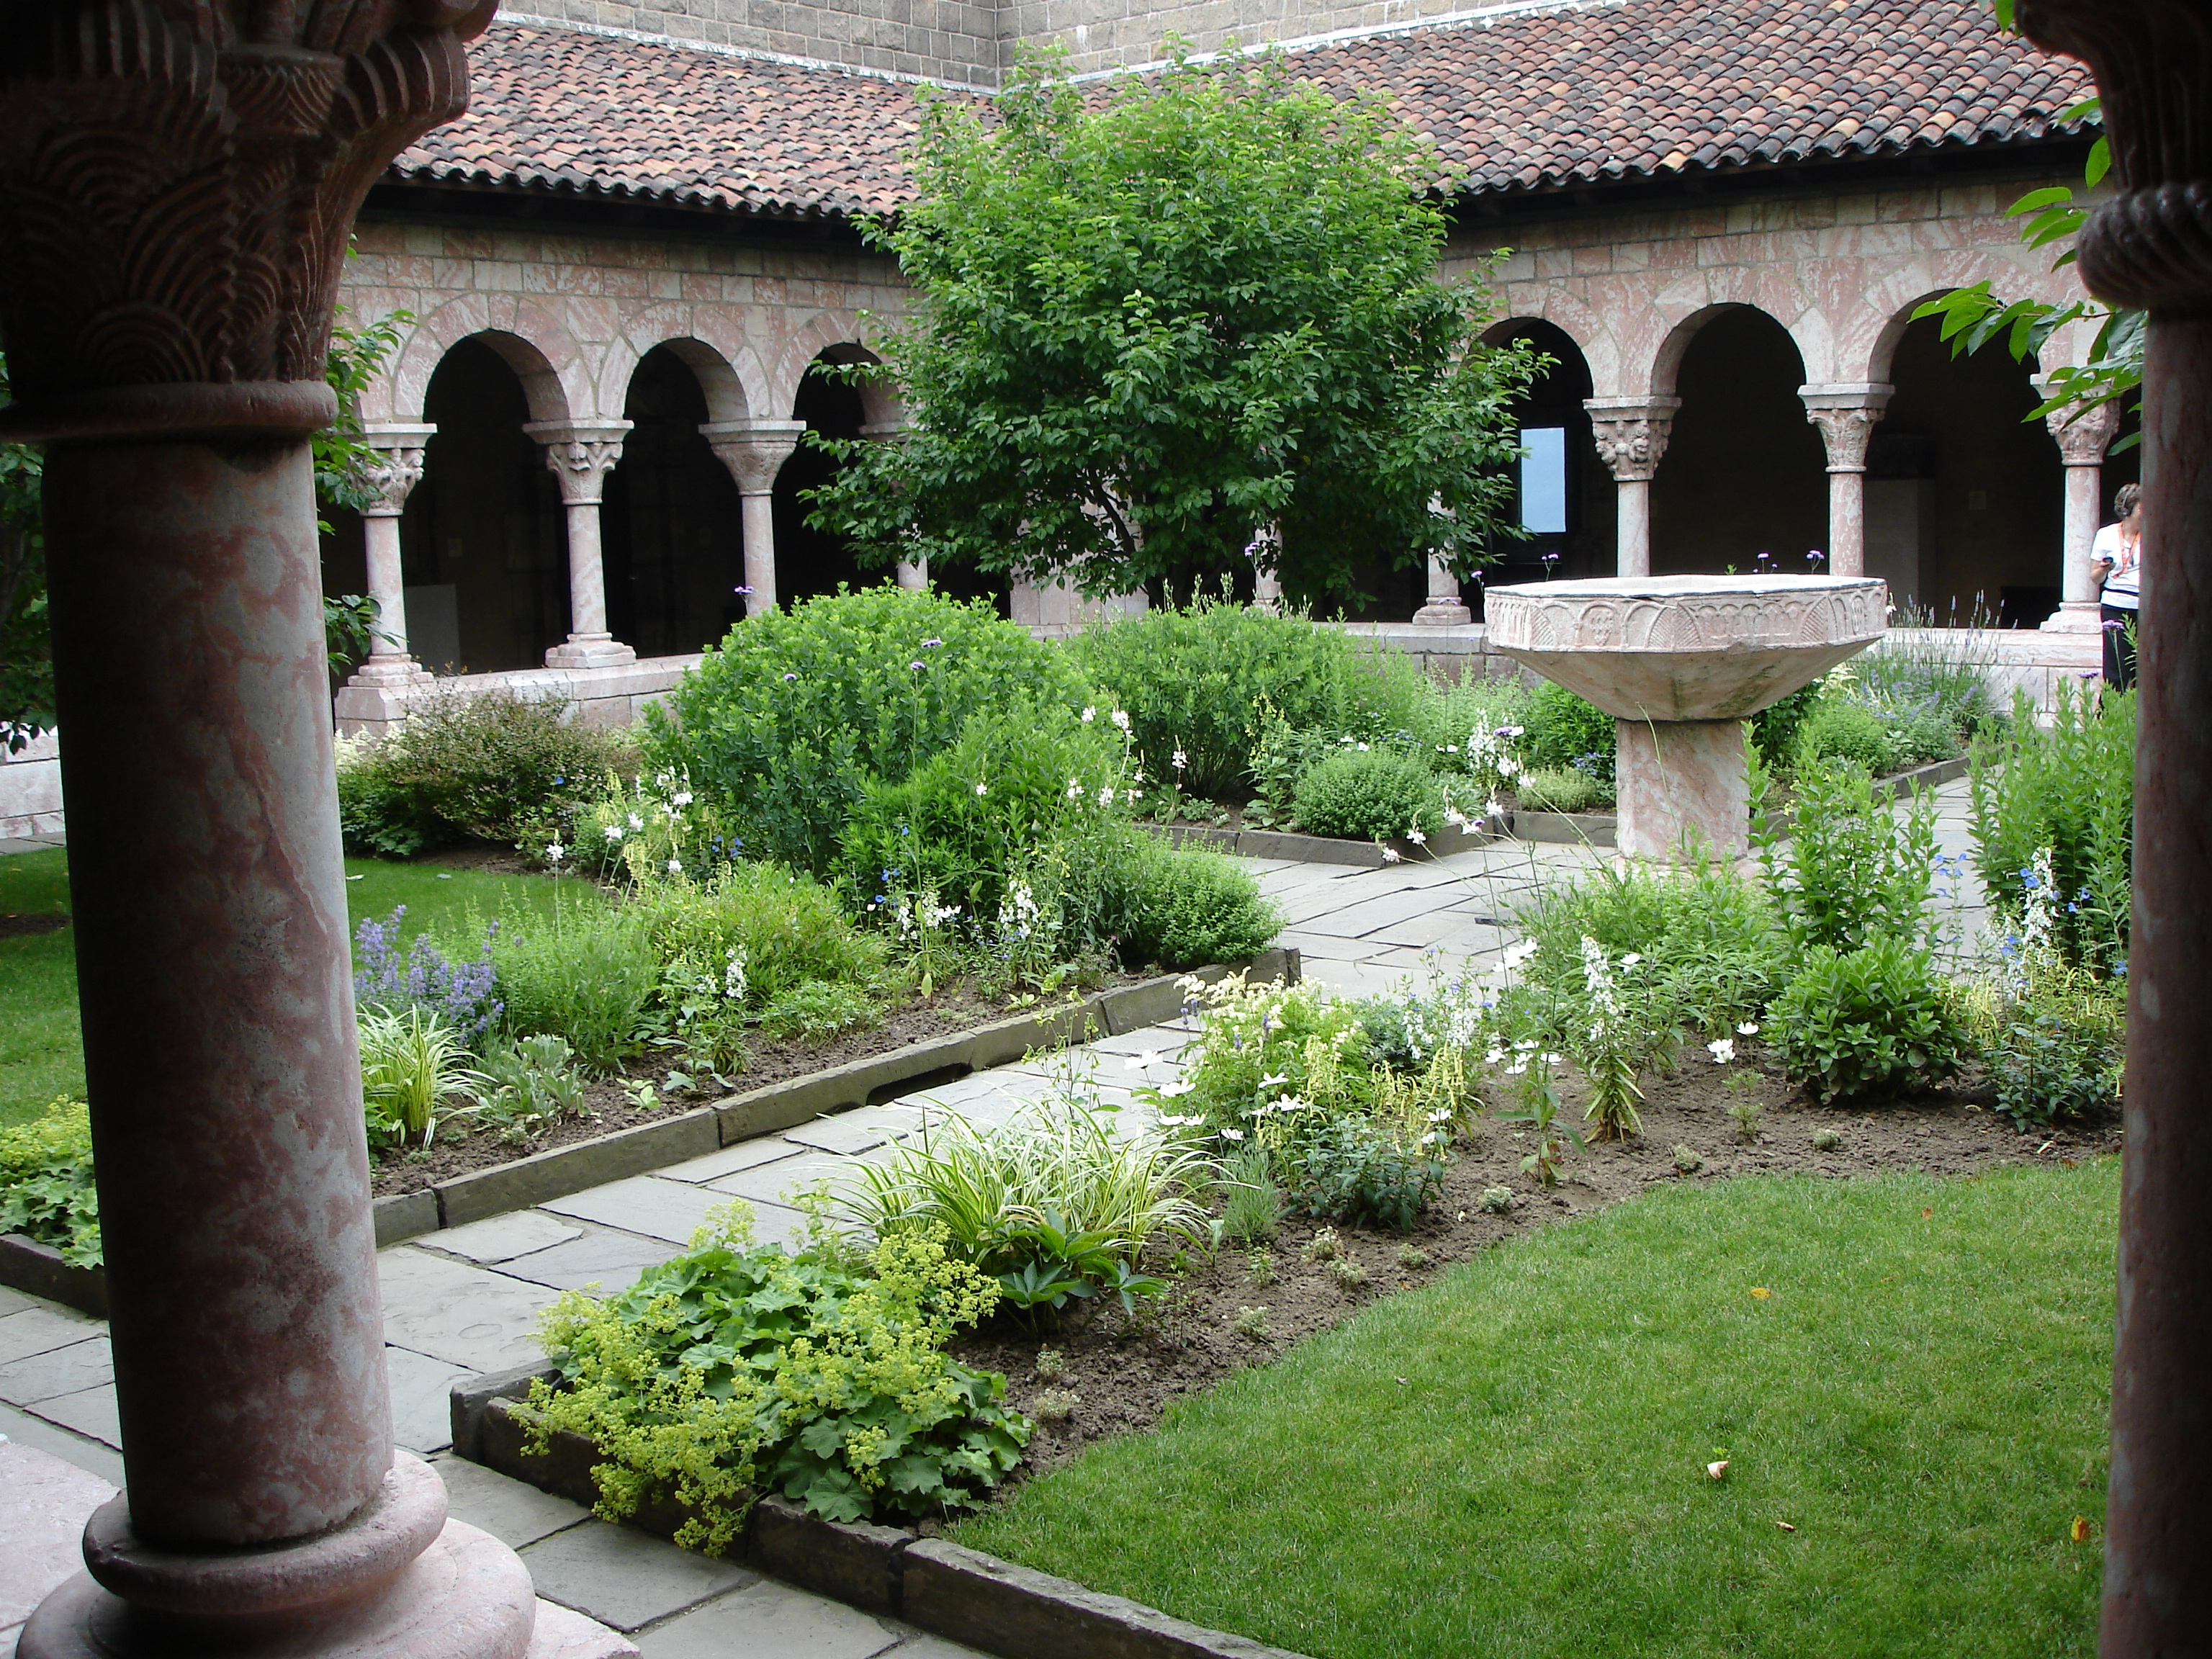 **THE CLOISTERS MUSEUM AND GARDENS IN NORTHERN MANHATTAN